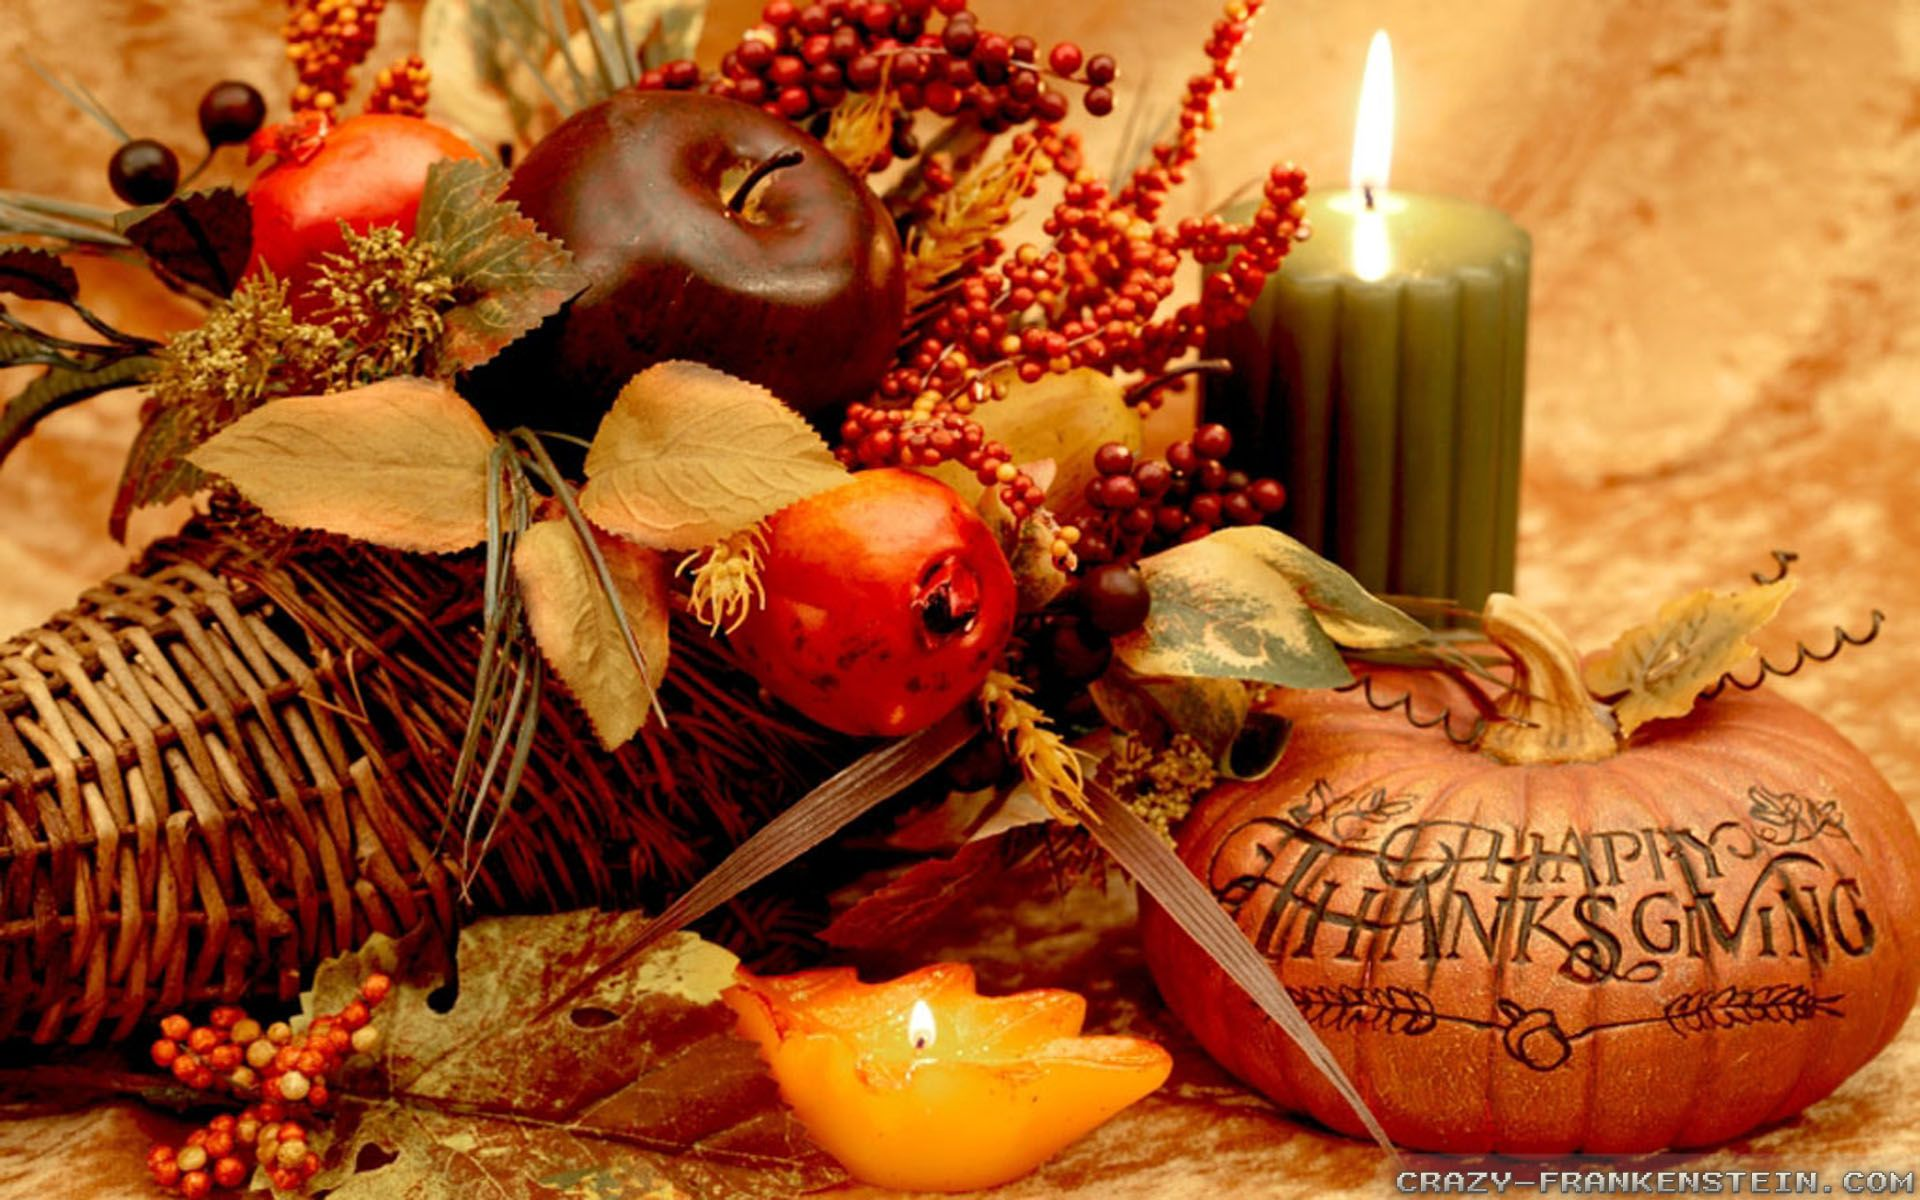 1920x1200 Thanksgiving Day Decorations wallpapers - Crazy Frankenstein